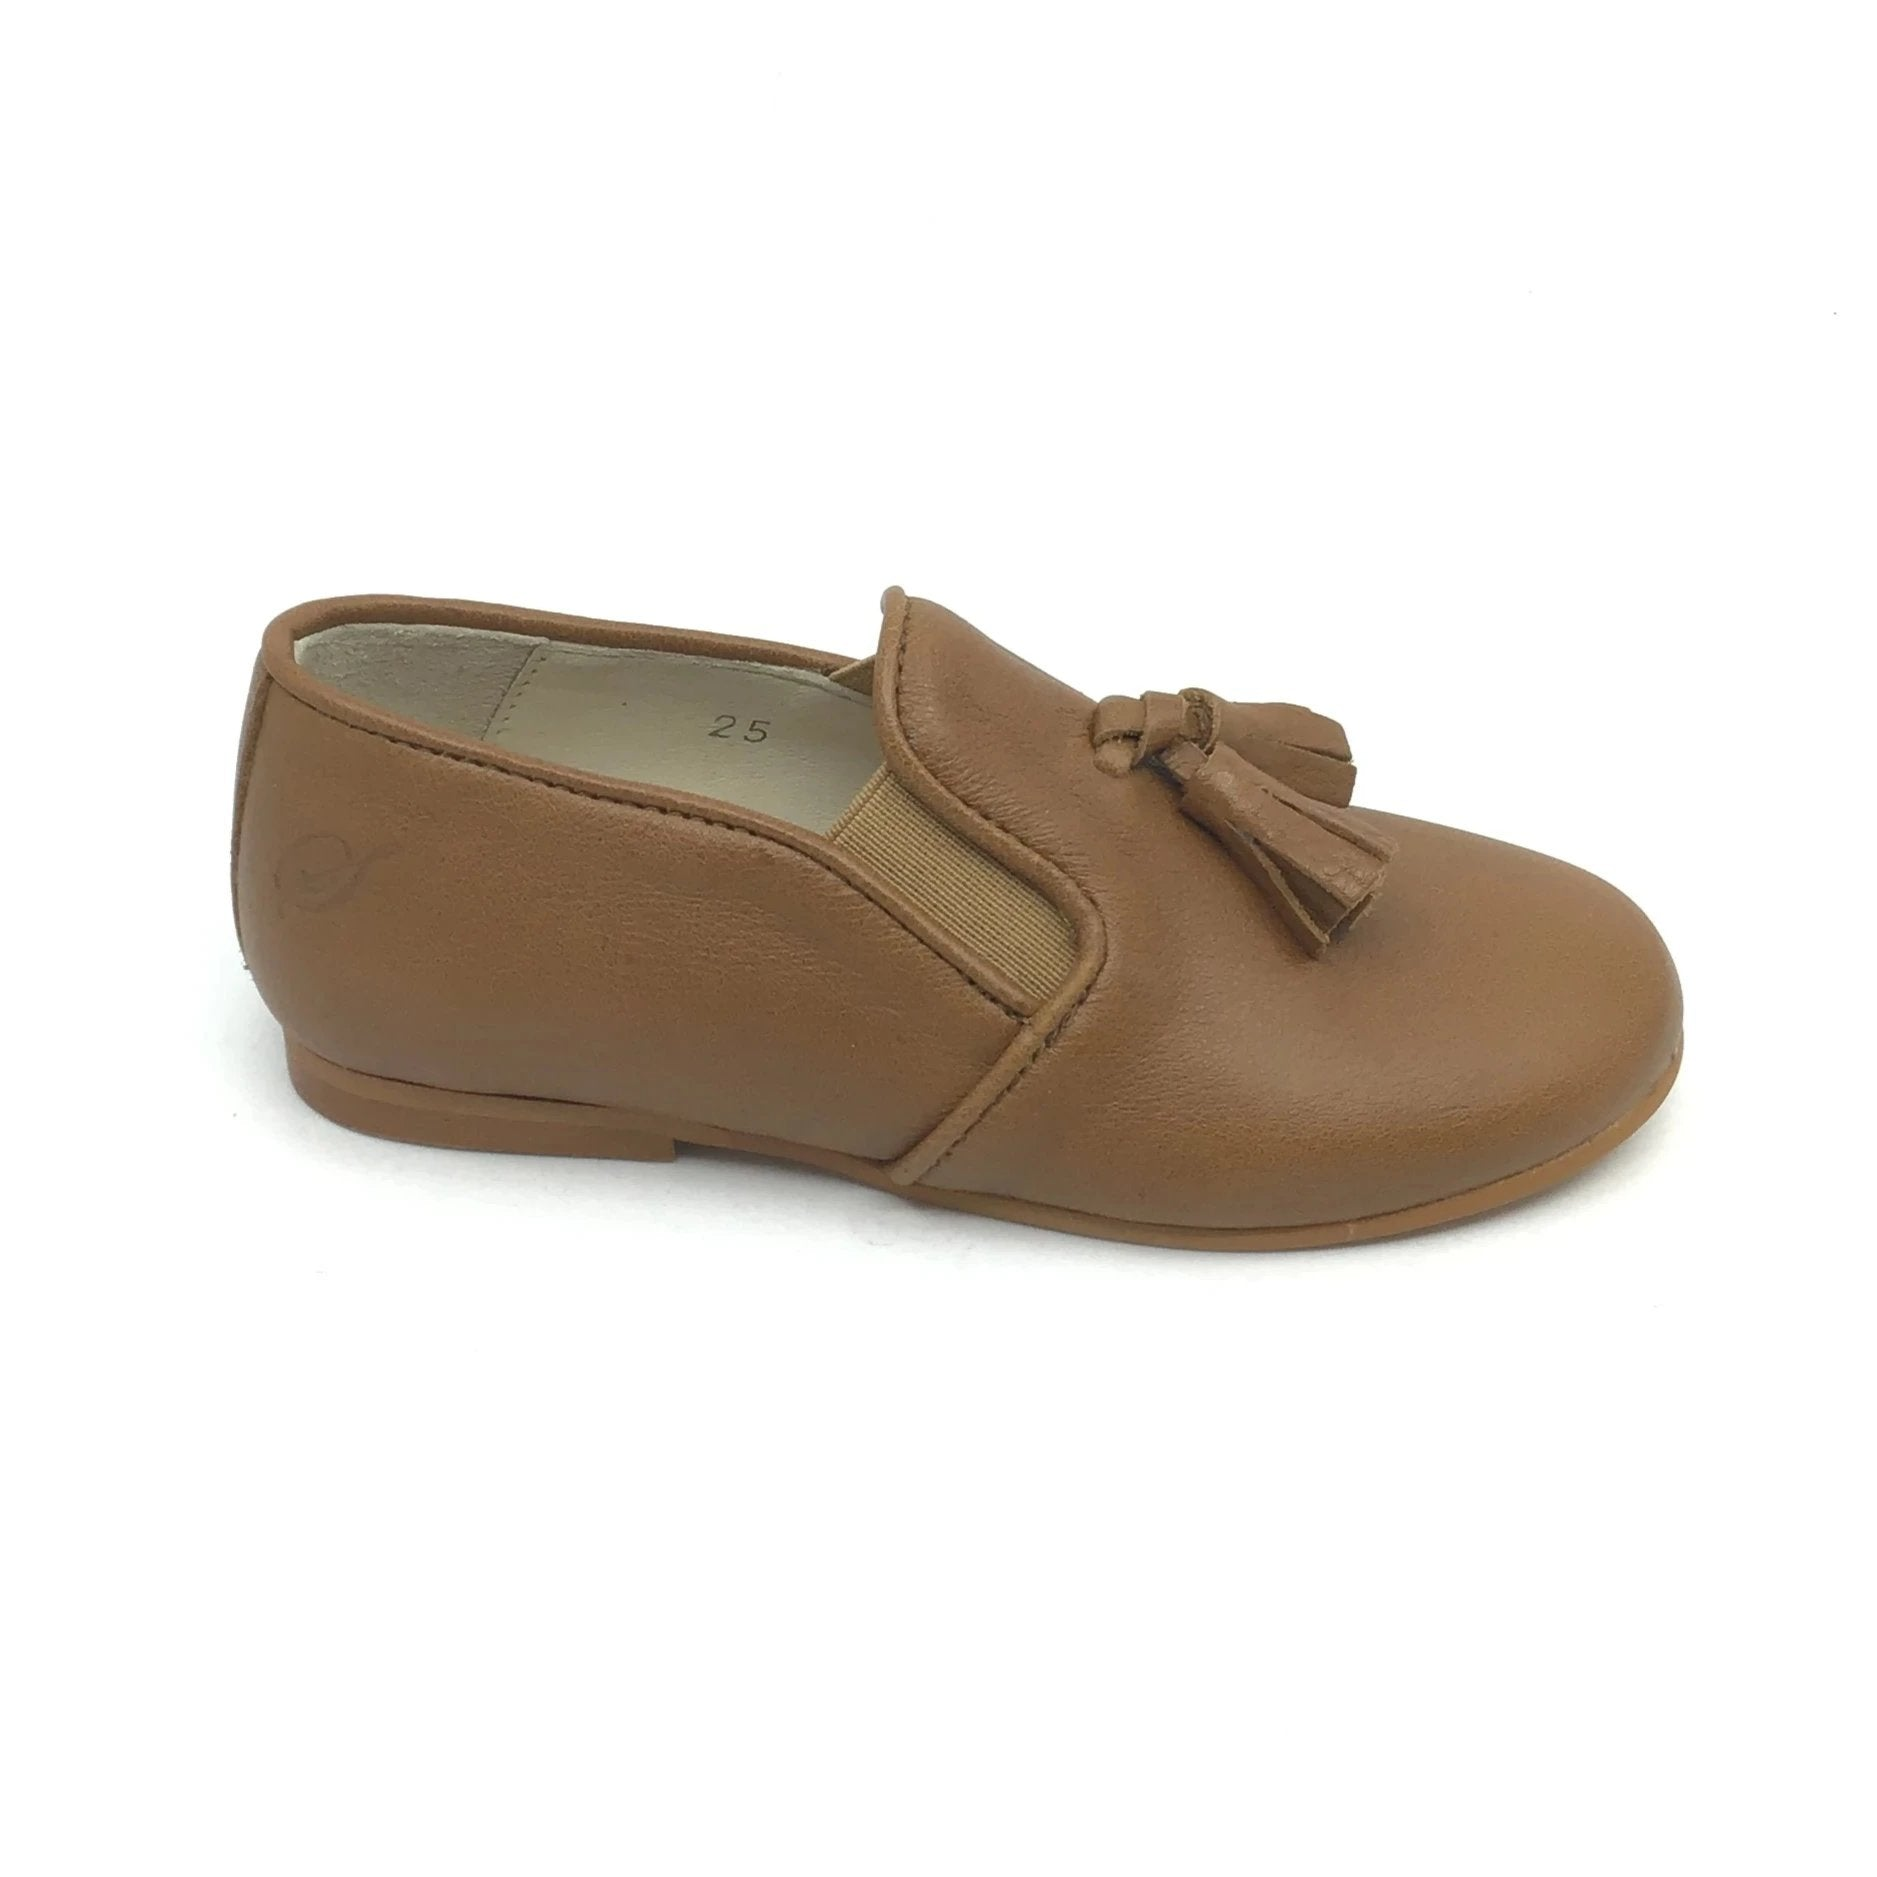 Sonatina Brown Tassle Slip-on